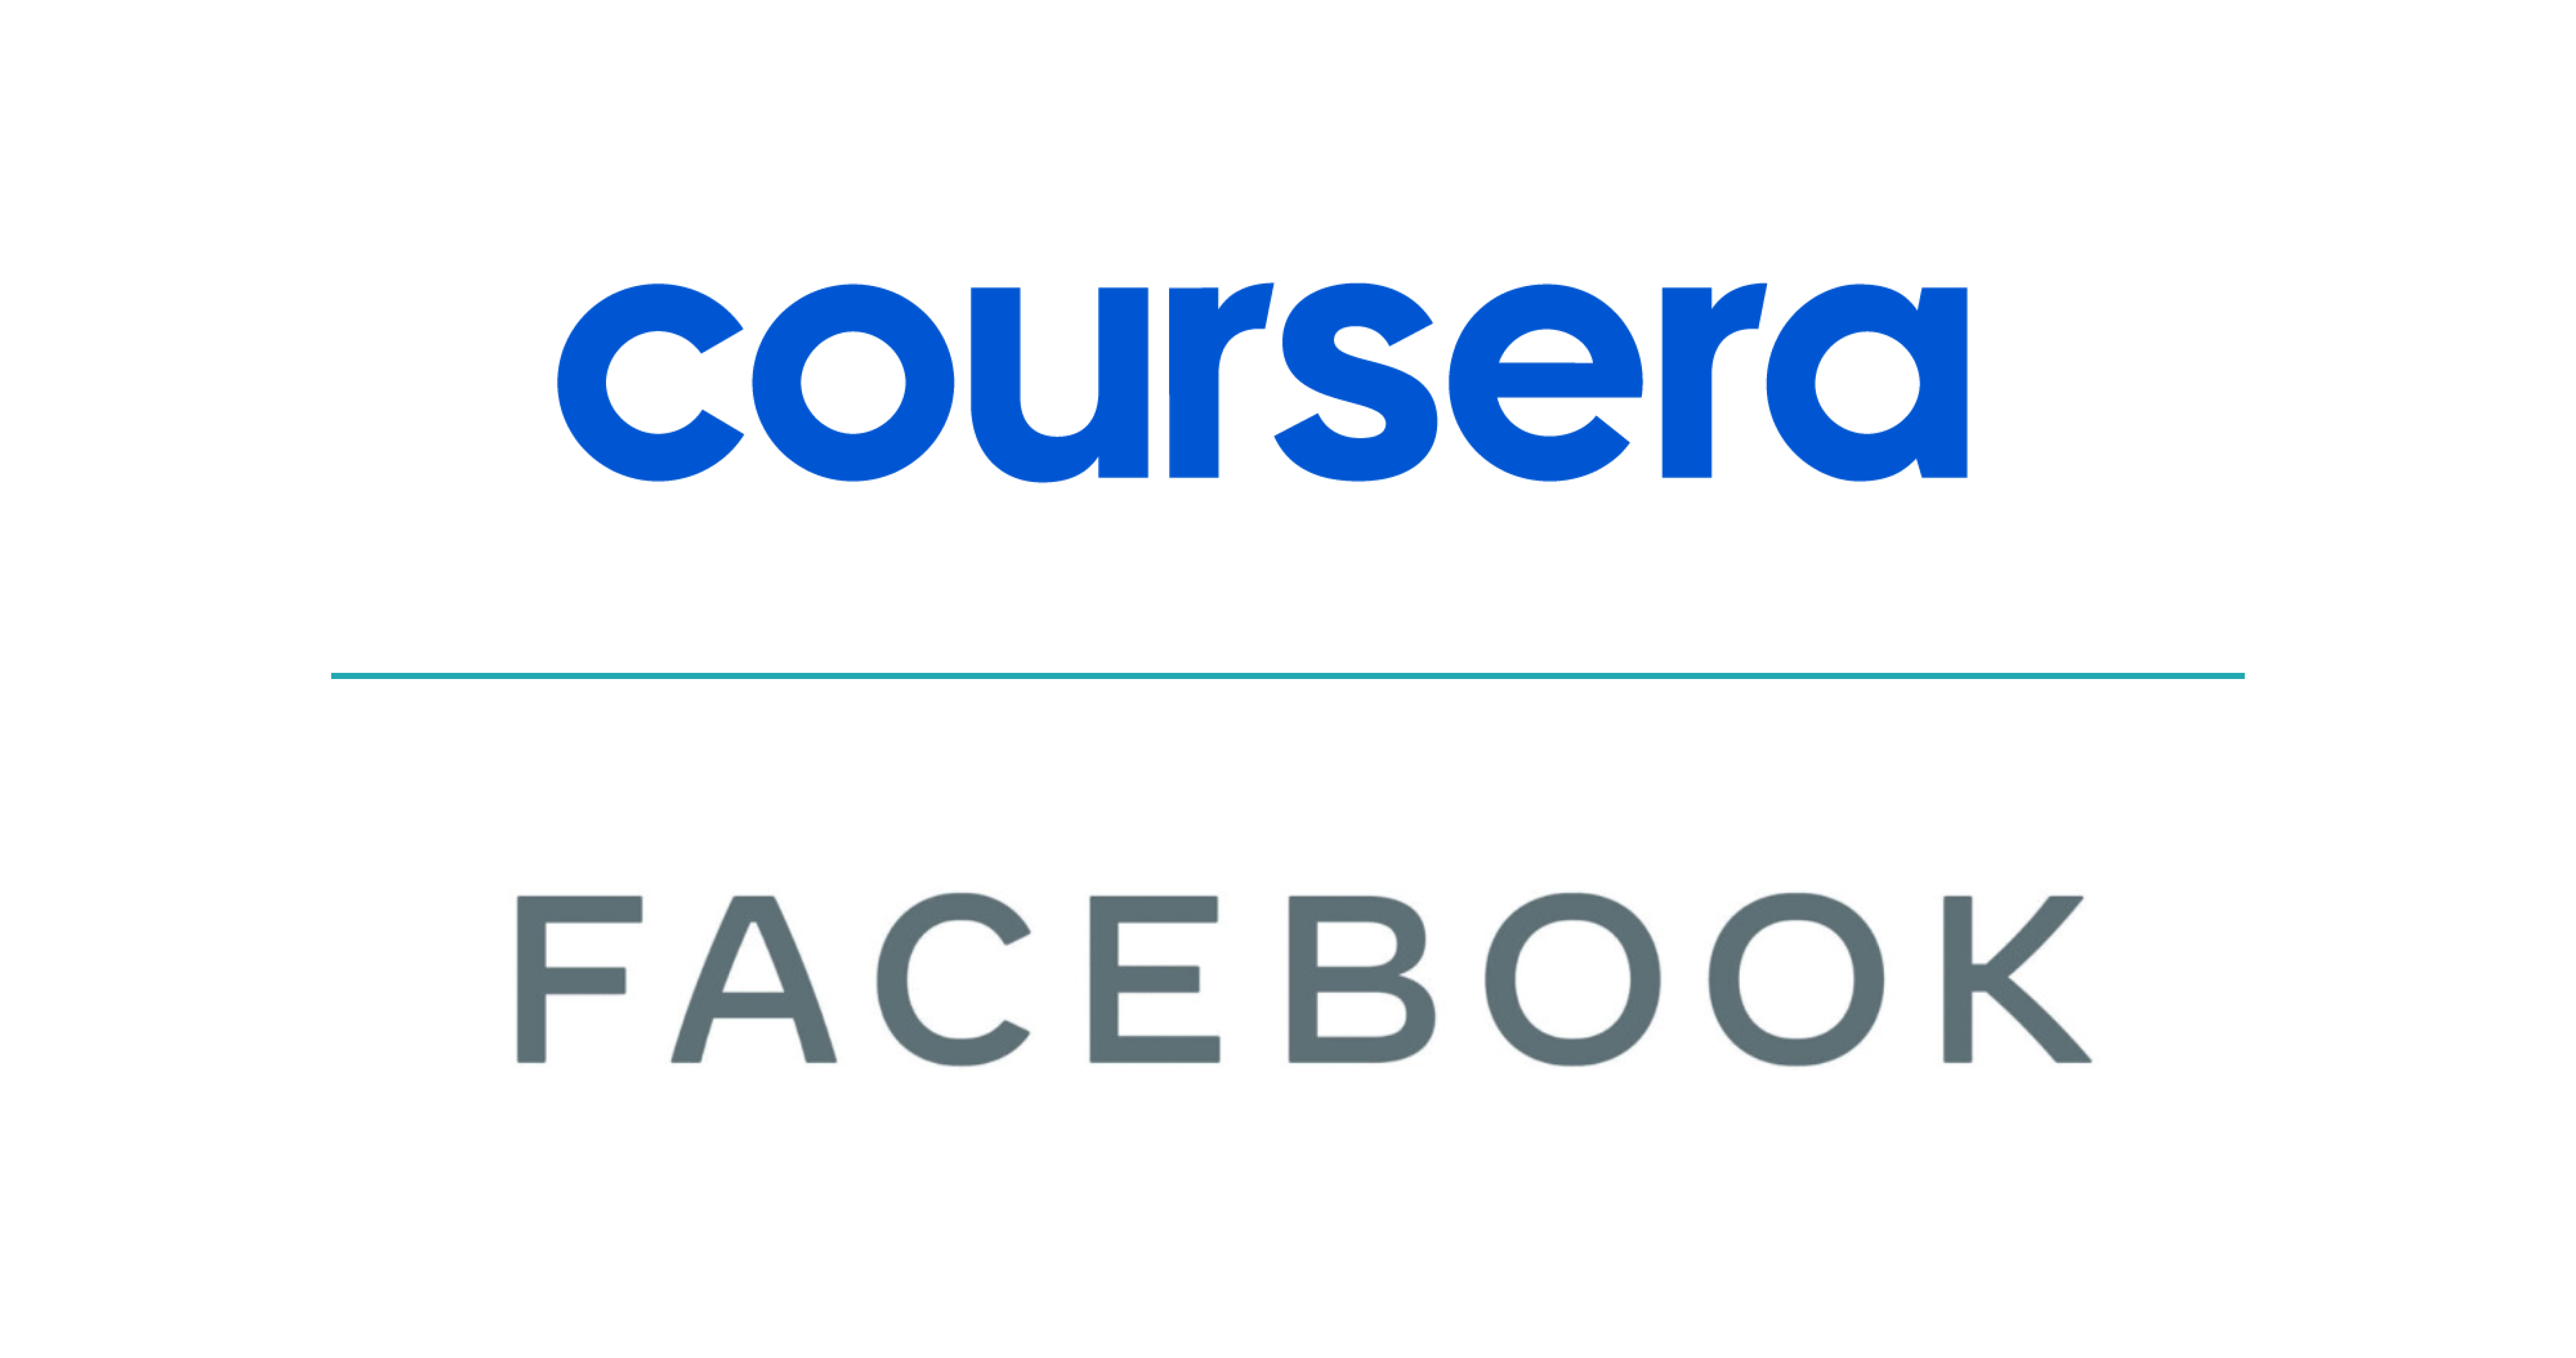 Facebook and Coursera Logos Paired Together